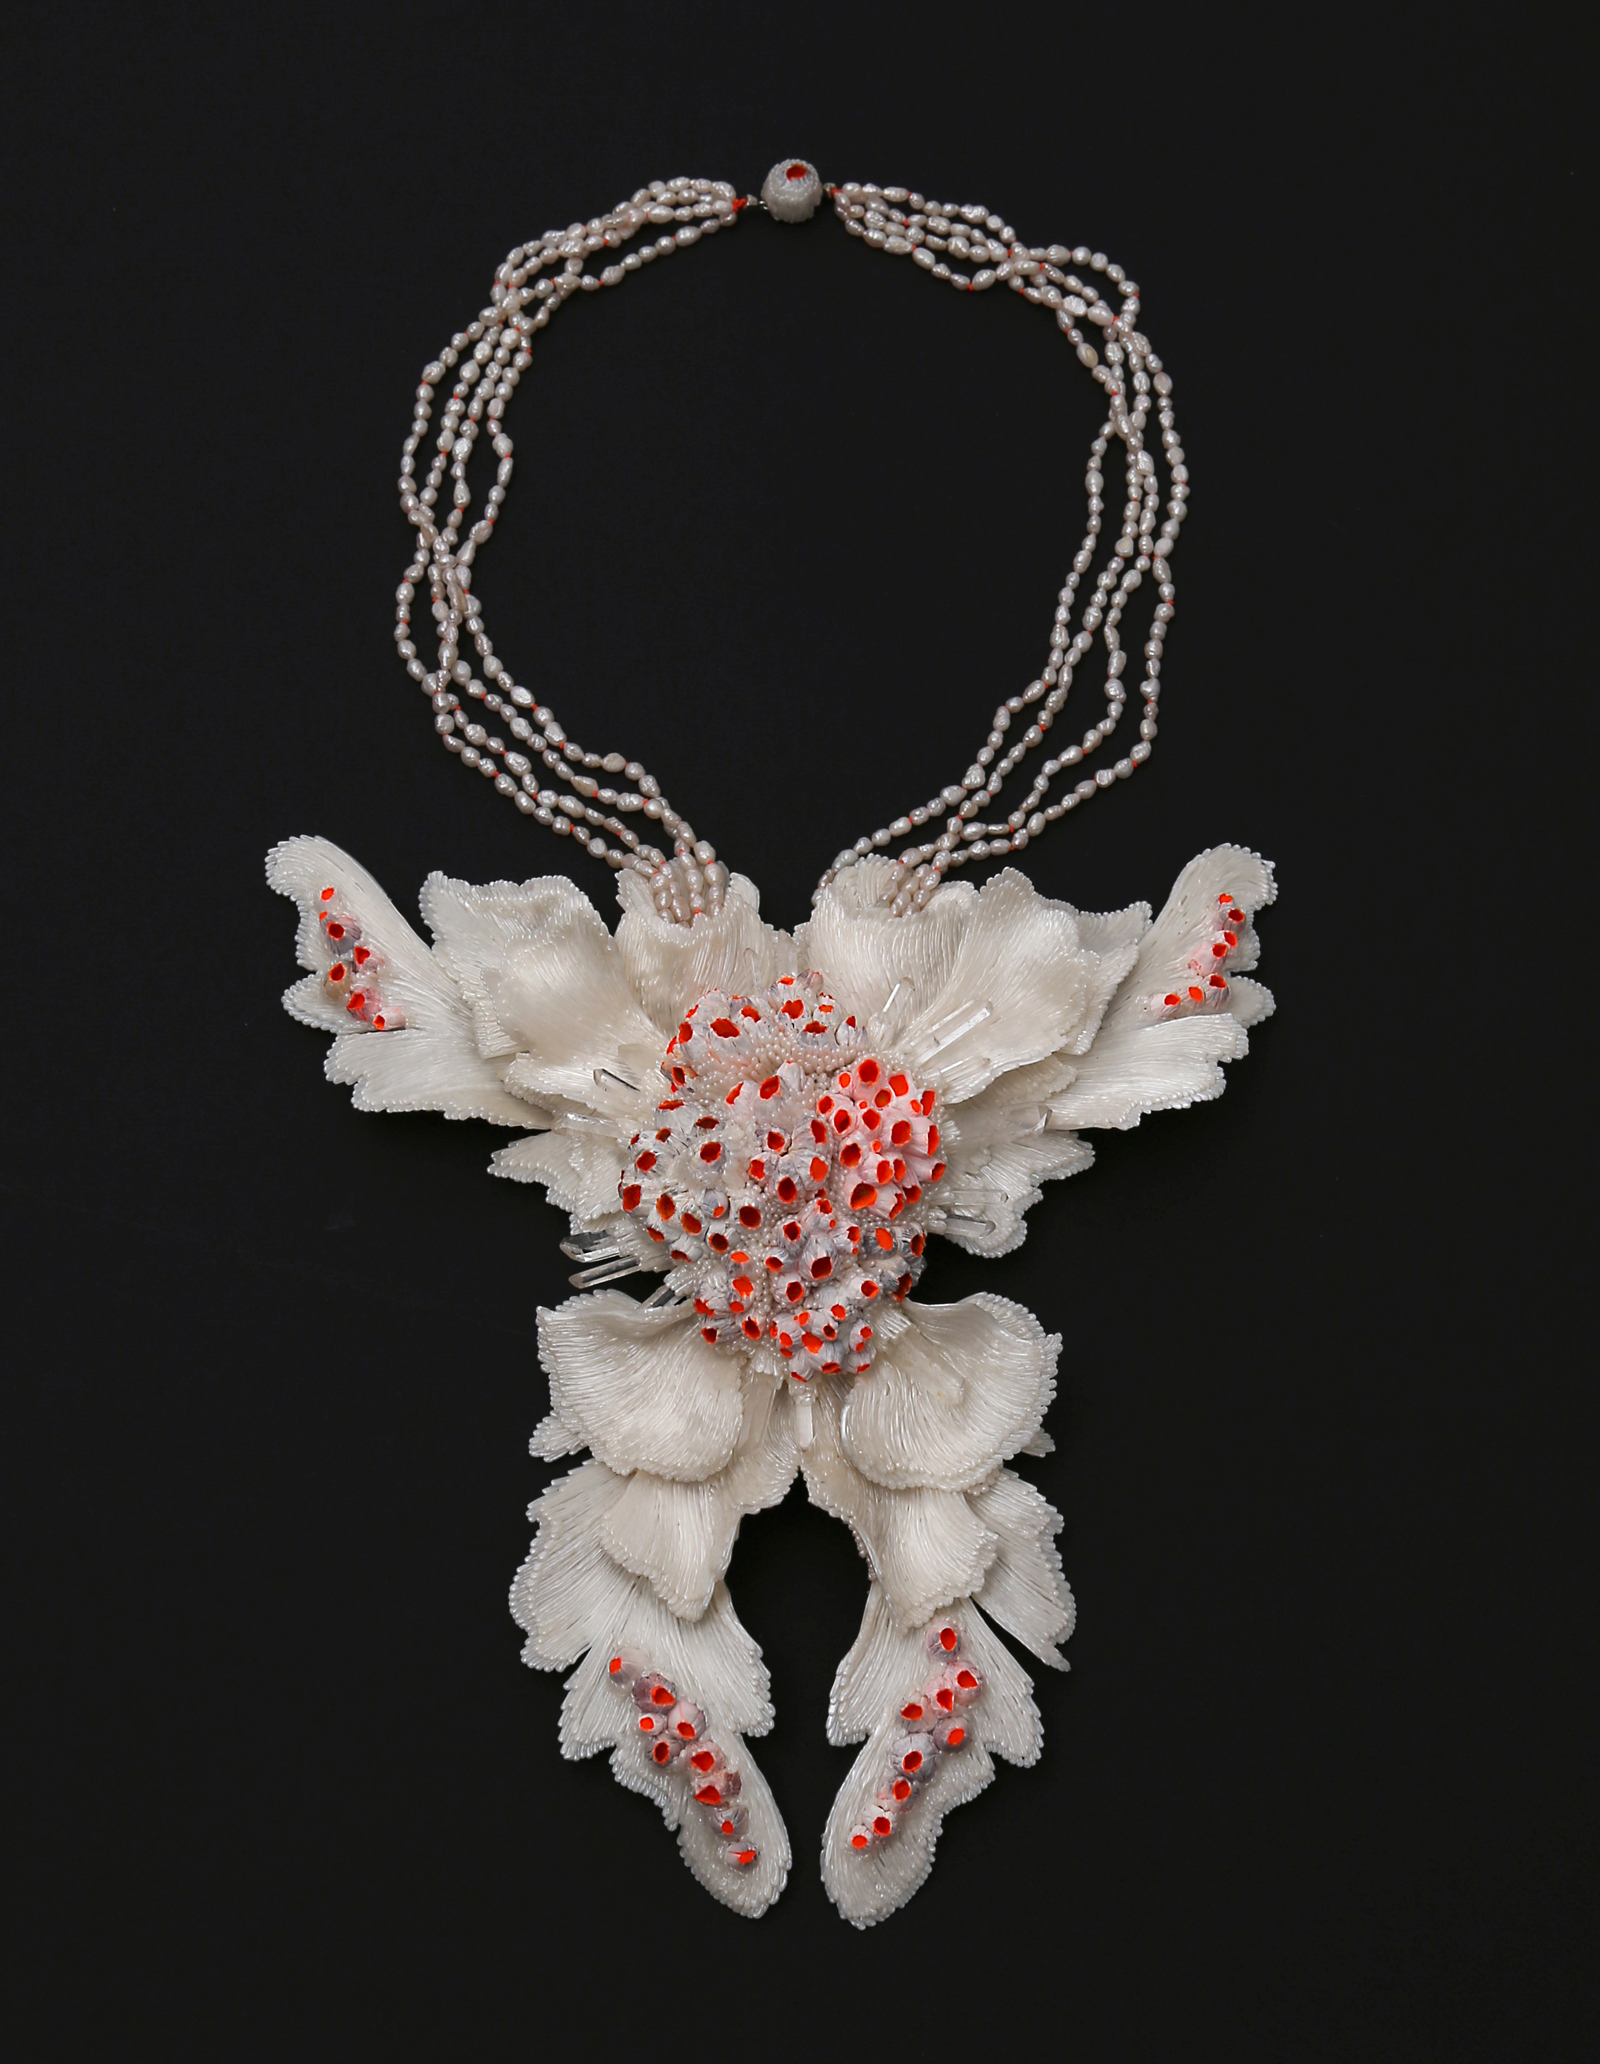 """Icarus II"" "" Necklace, 2020 I PLA, barnacles, second hand pearls, crystals, silver, paint I Photo: Carina Shoshtary"